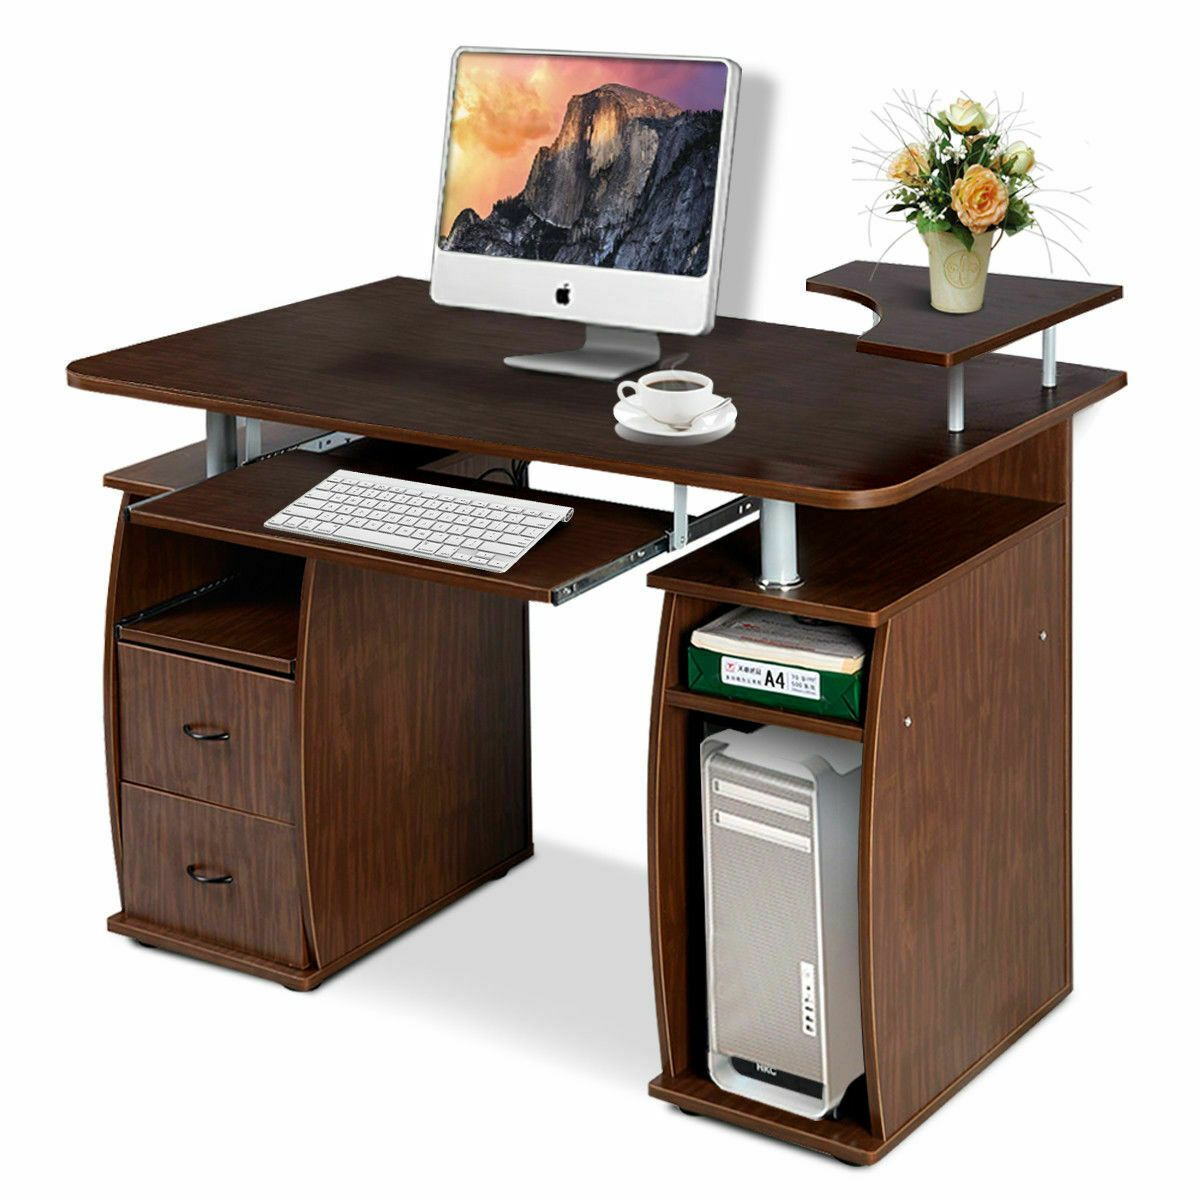 Computer PC Desk Work Station Home Office Monitor&Printer